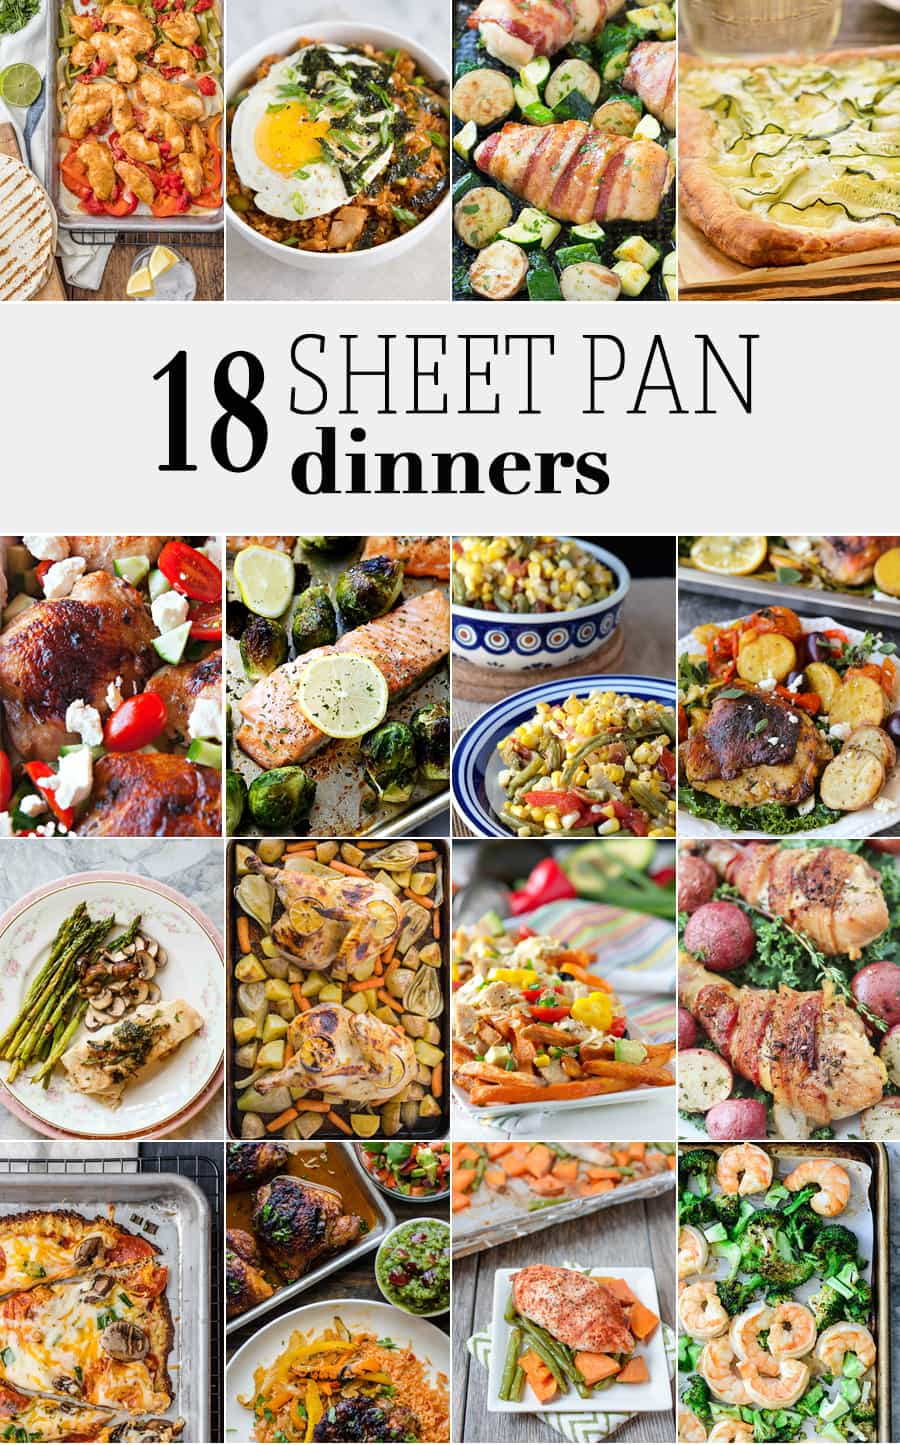 10 Sheet Pan Dinners The Cookie Rookie 174